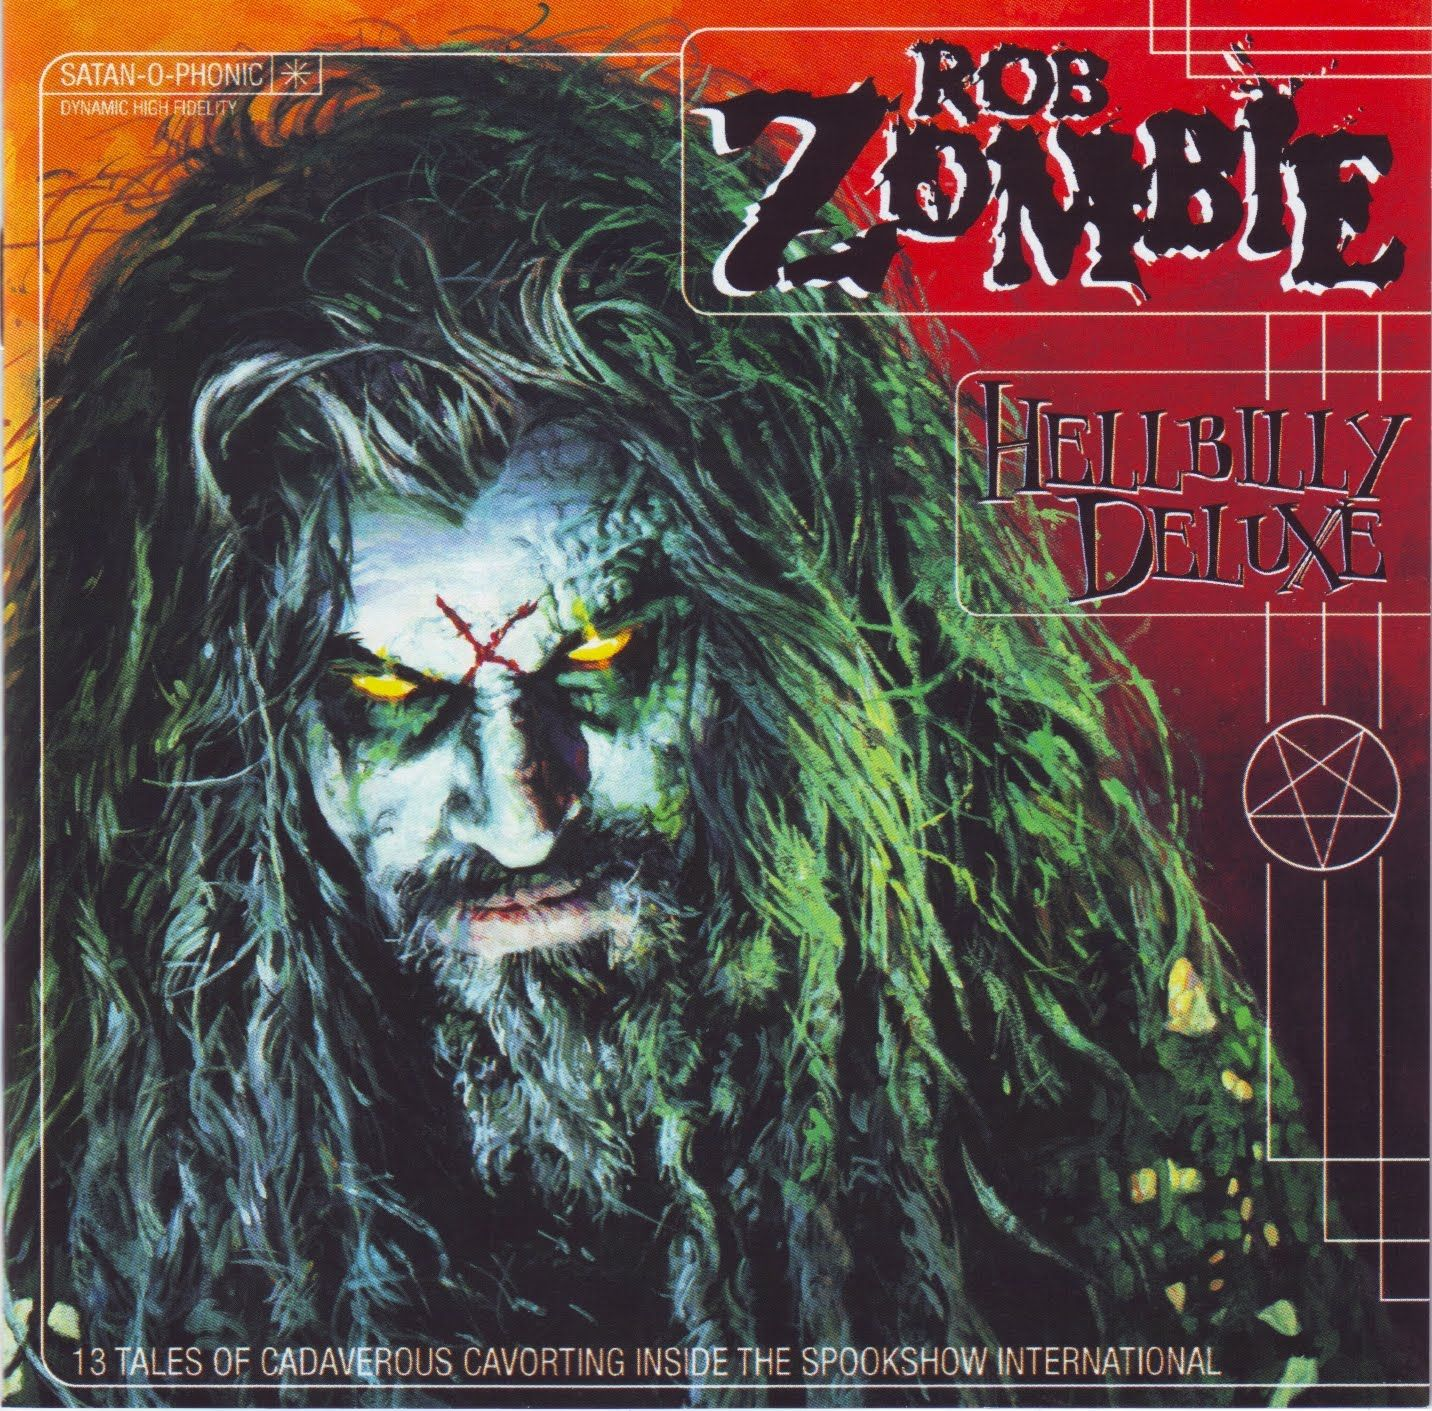 Rob Zombie Hillbilly Deluxe First Album I Ve Ever Bought With My Own Hard Earned Money Bought It When I Was 15 And Rob Zombie Good Music Zombie